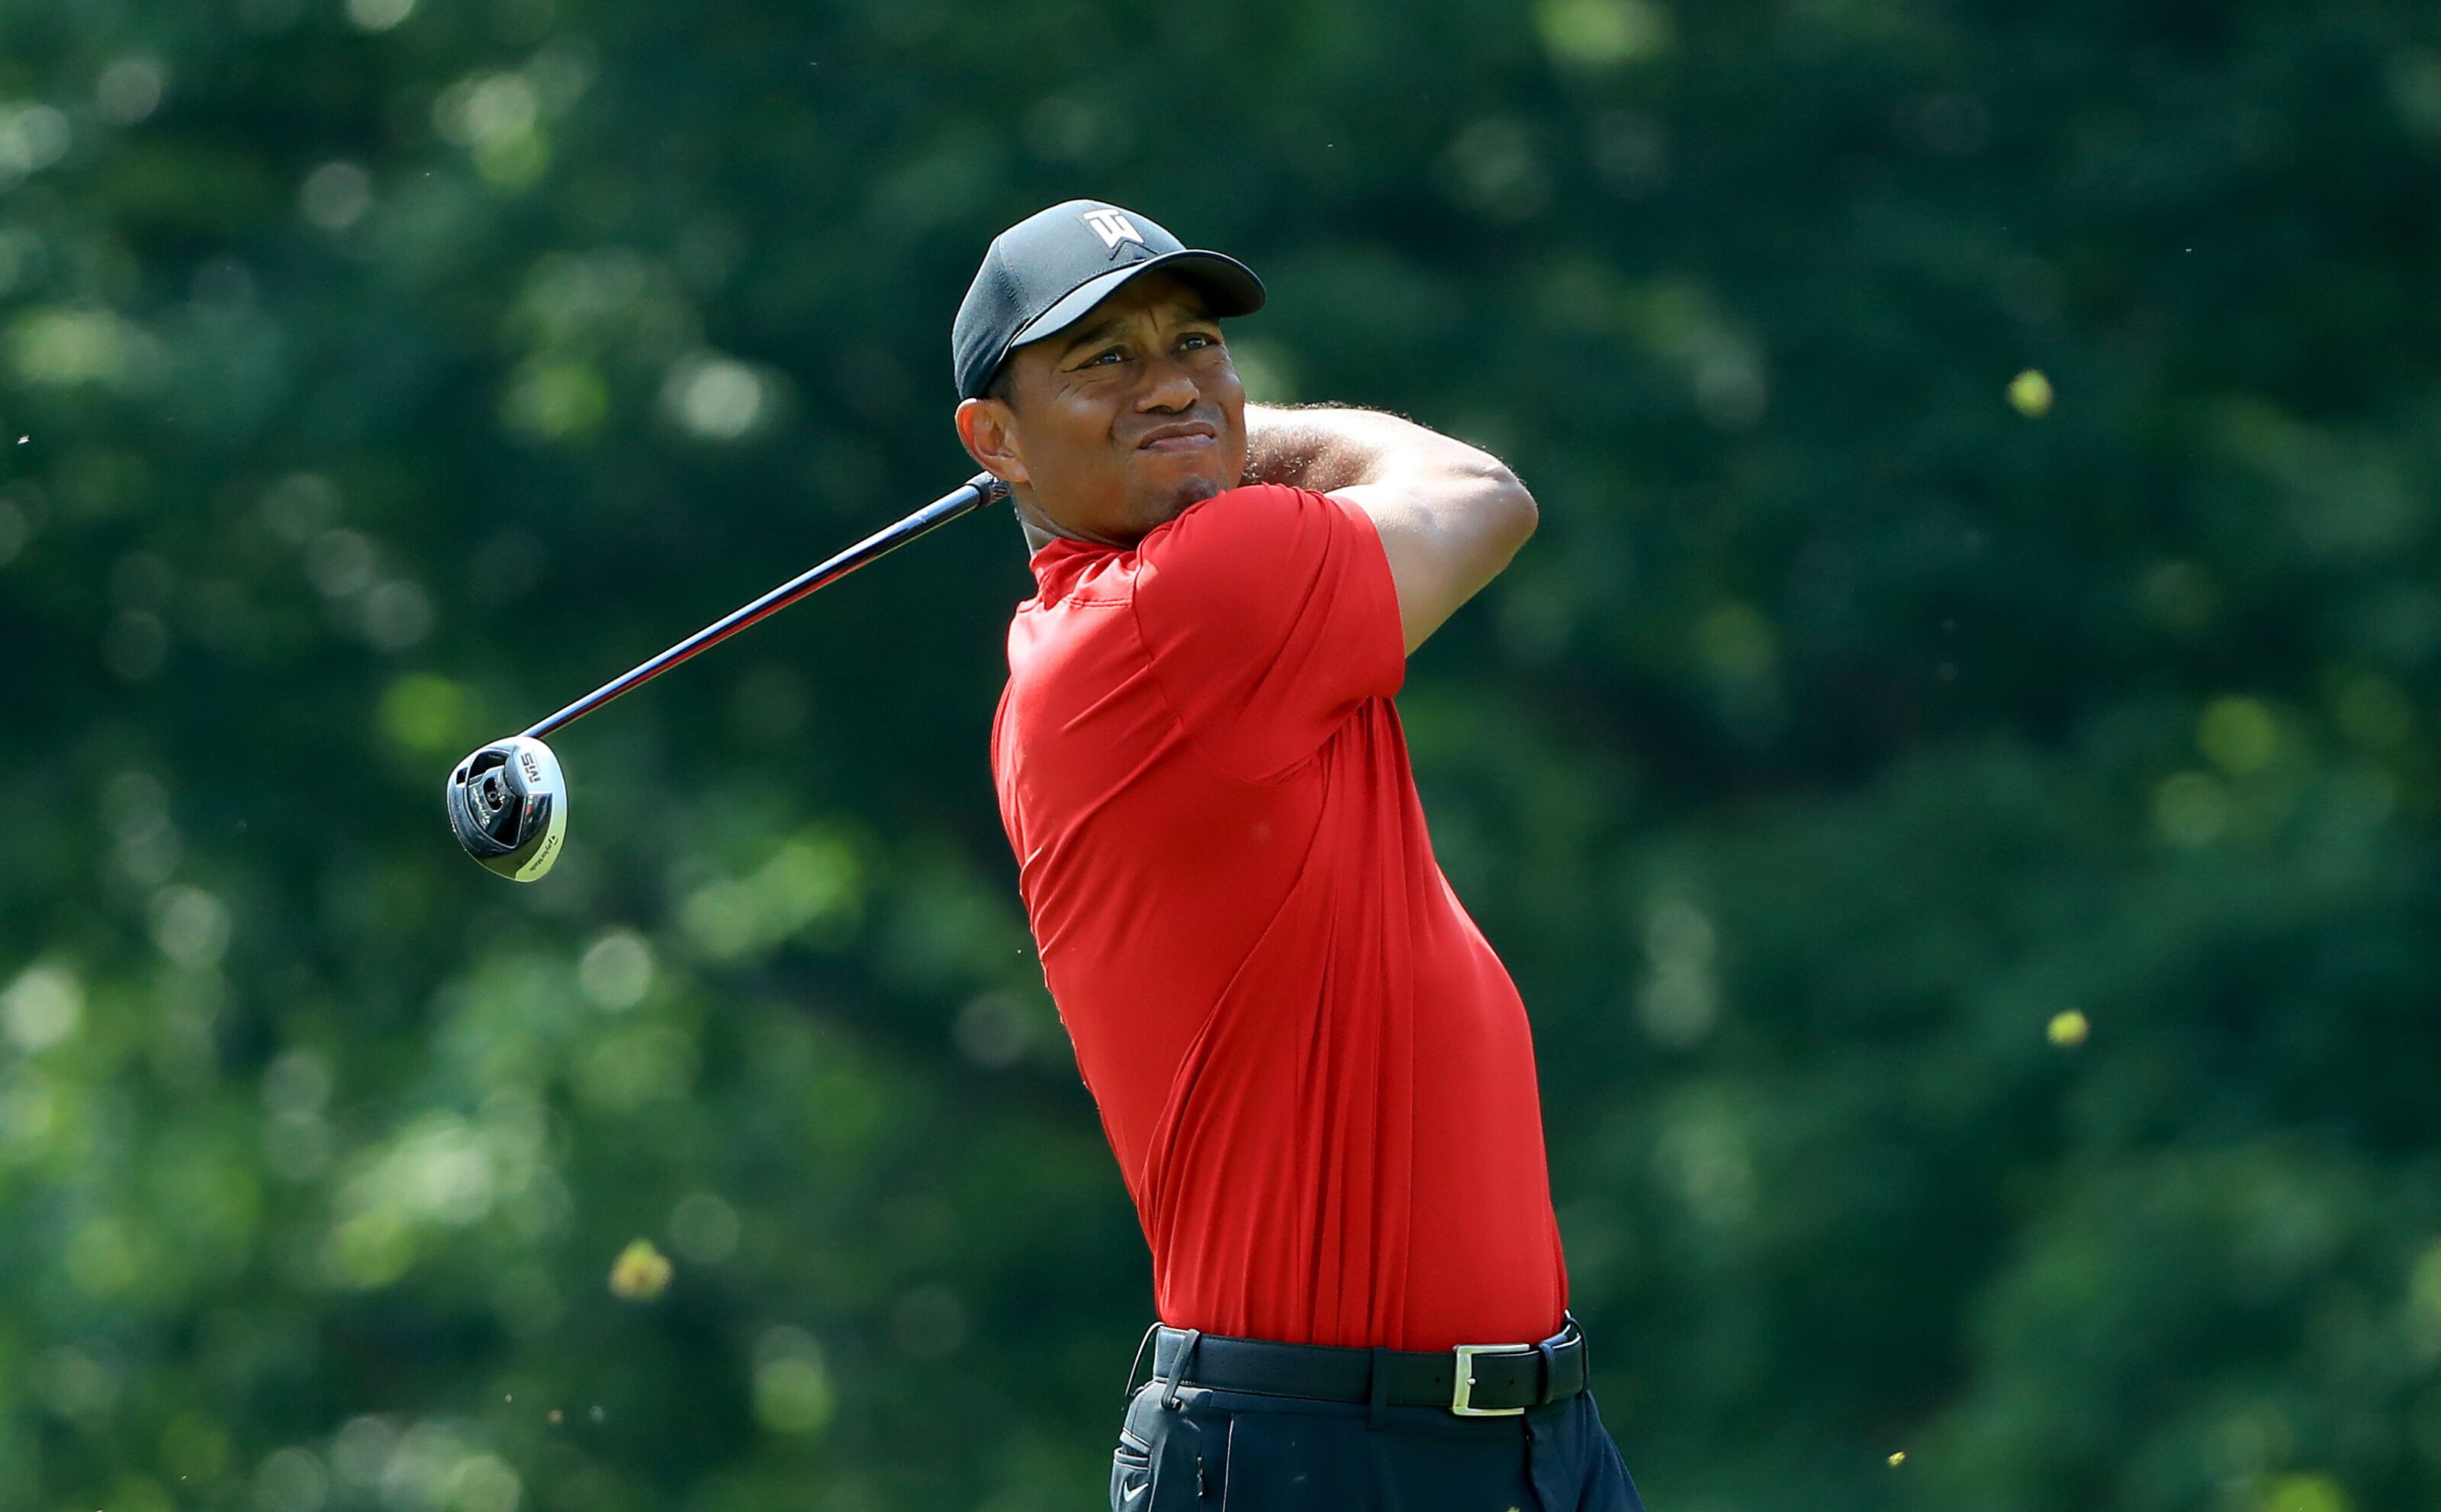 Fantasy Golf: DraftKings Selections for the 2019 U.S. Open